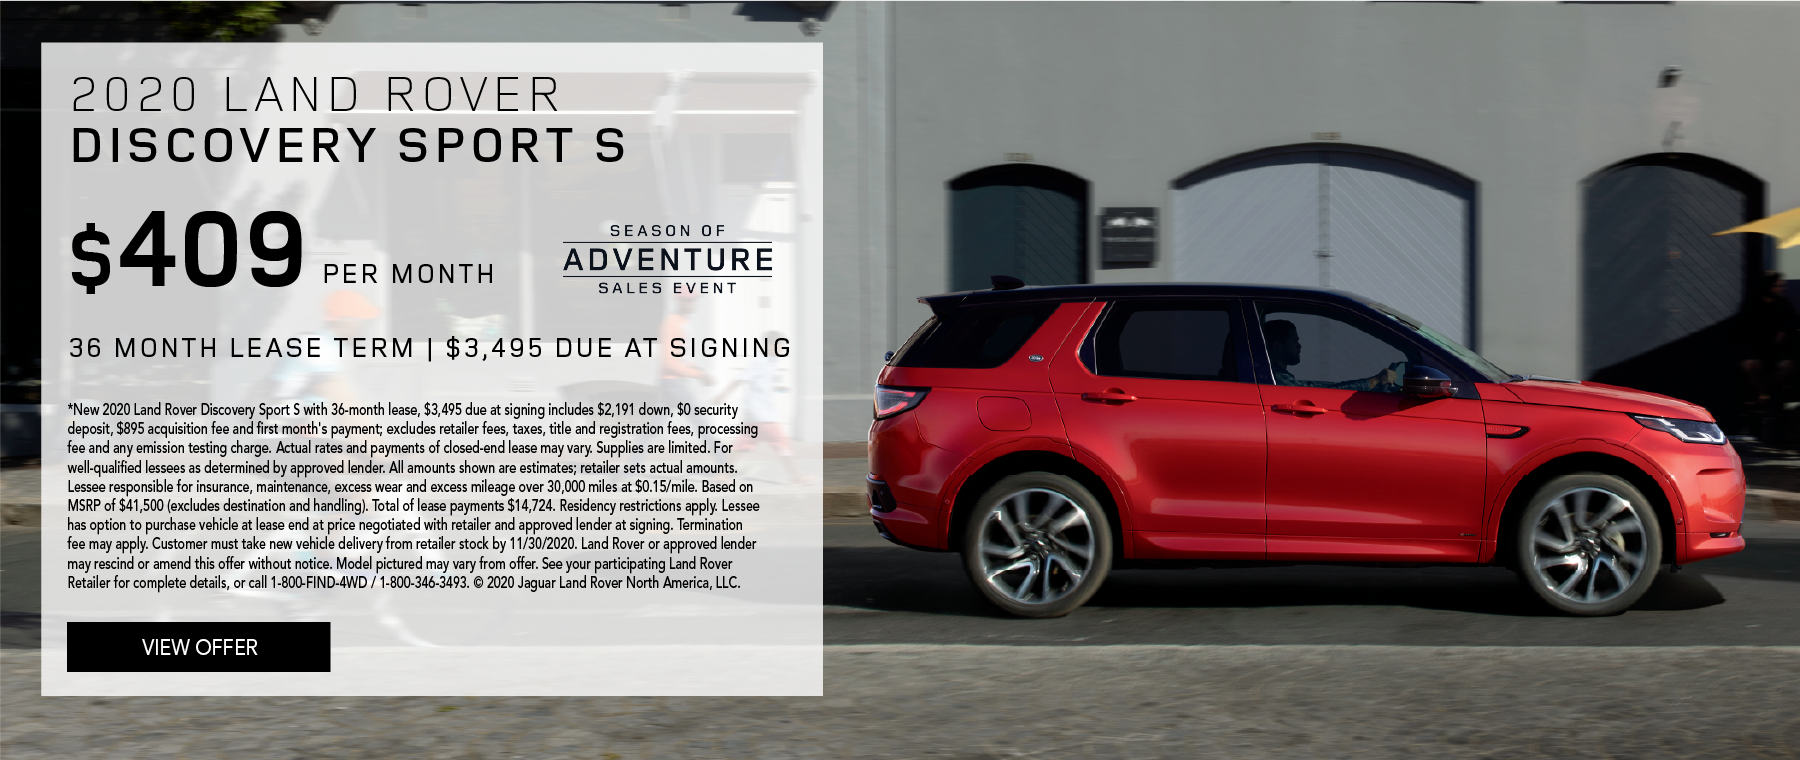 2020 LAND ROVER DISCOVERY SPORT S. $409 PER MONTH. 36 MONTH LEASE TERM. $3,495 CASH DUE AT SIGNING. $0 SECURITY DEPOSIT. 10,000 MILES PER YEAR. EXCLUDES RETAILER FEES, TAXES, TITLE AND REGISTRATION FEES, PROCESSING FEE AND ANY EMISSION TESTING CHARGE. ENDS 11/30/2020.